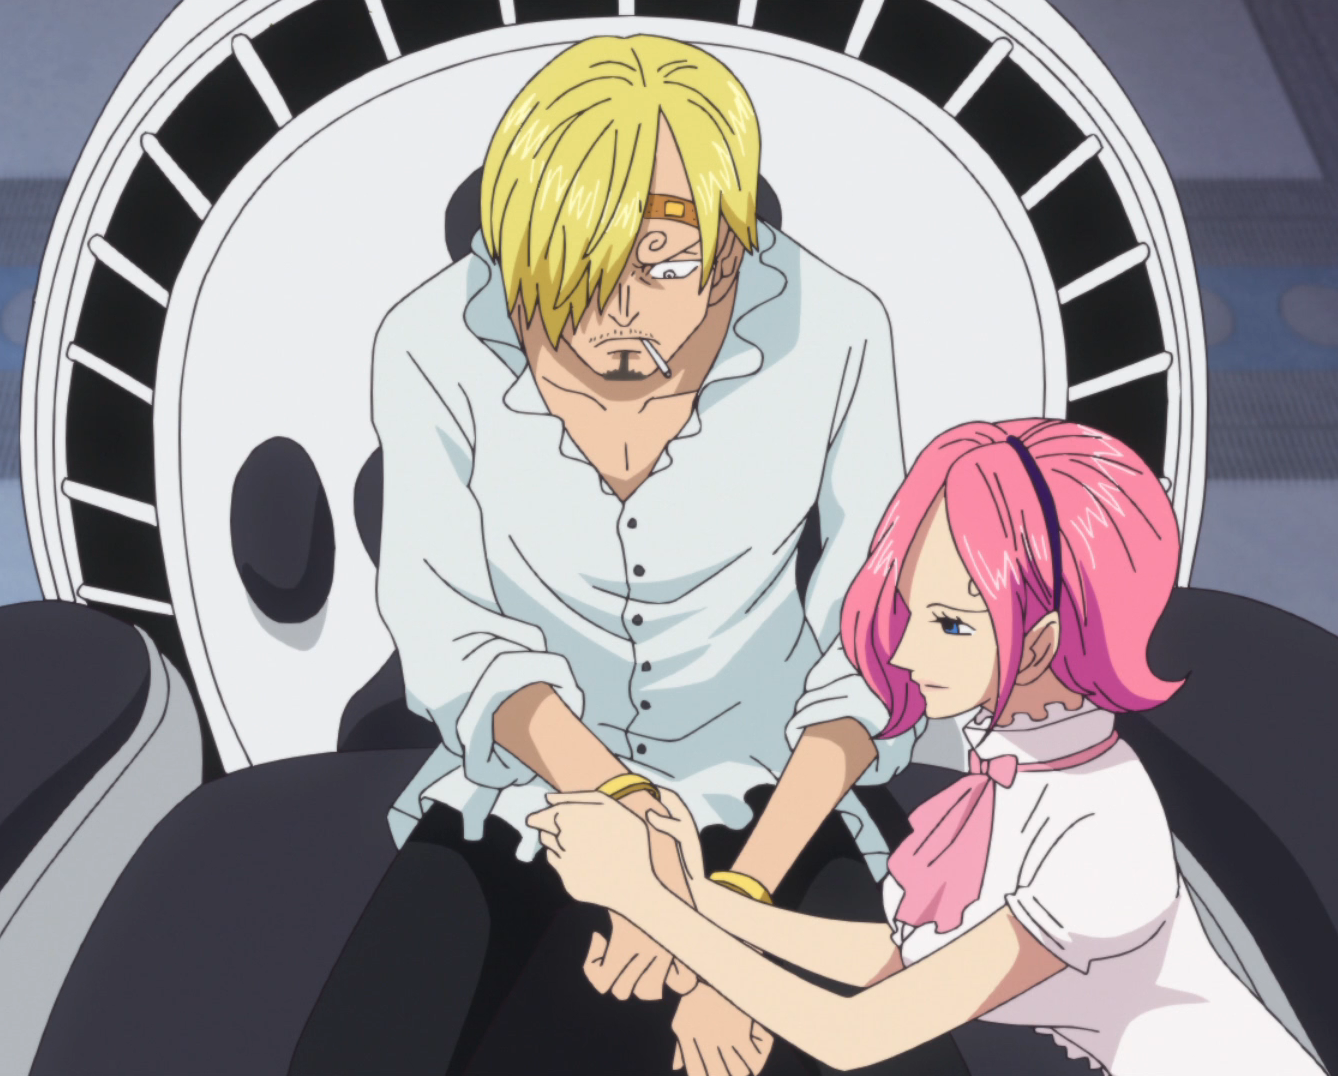 File:Reiju Puts Wristlets on Sanji.png